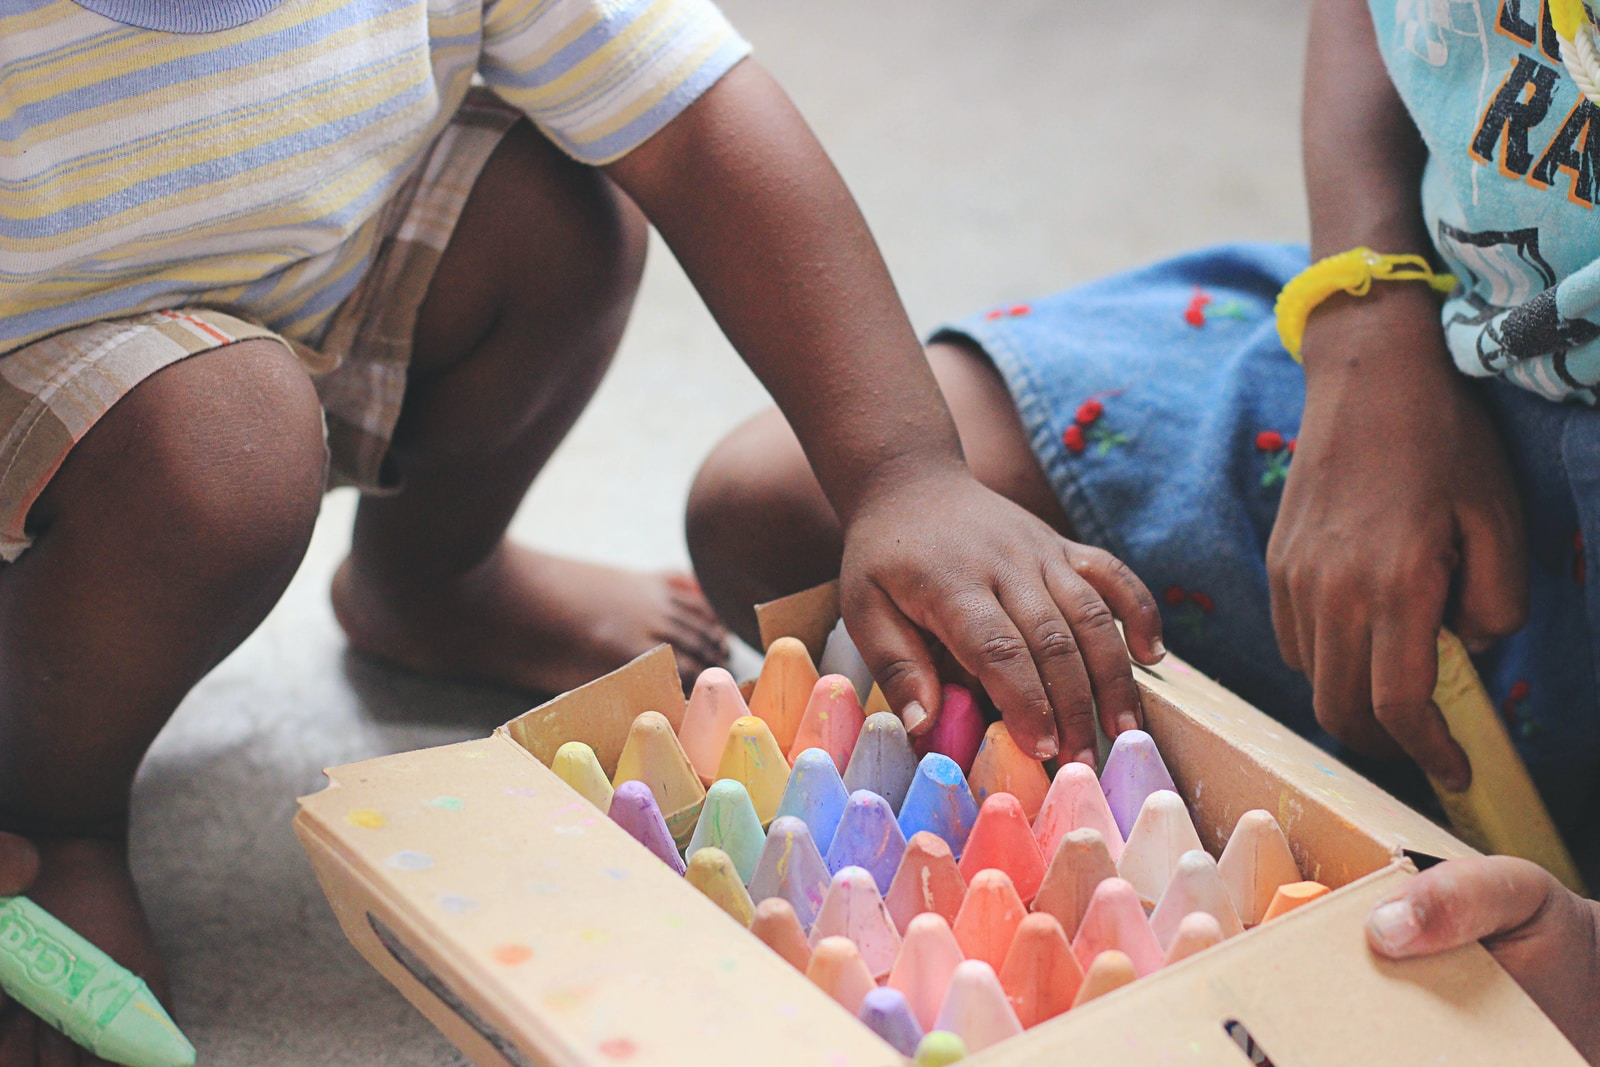 12 Children's Ministry Outreach Ideas for Churches and Families